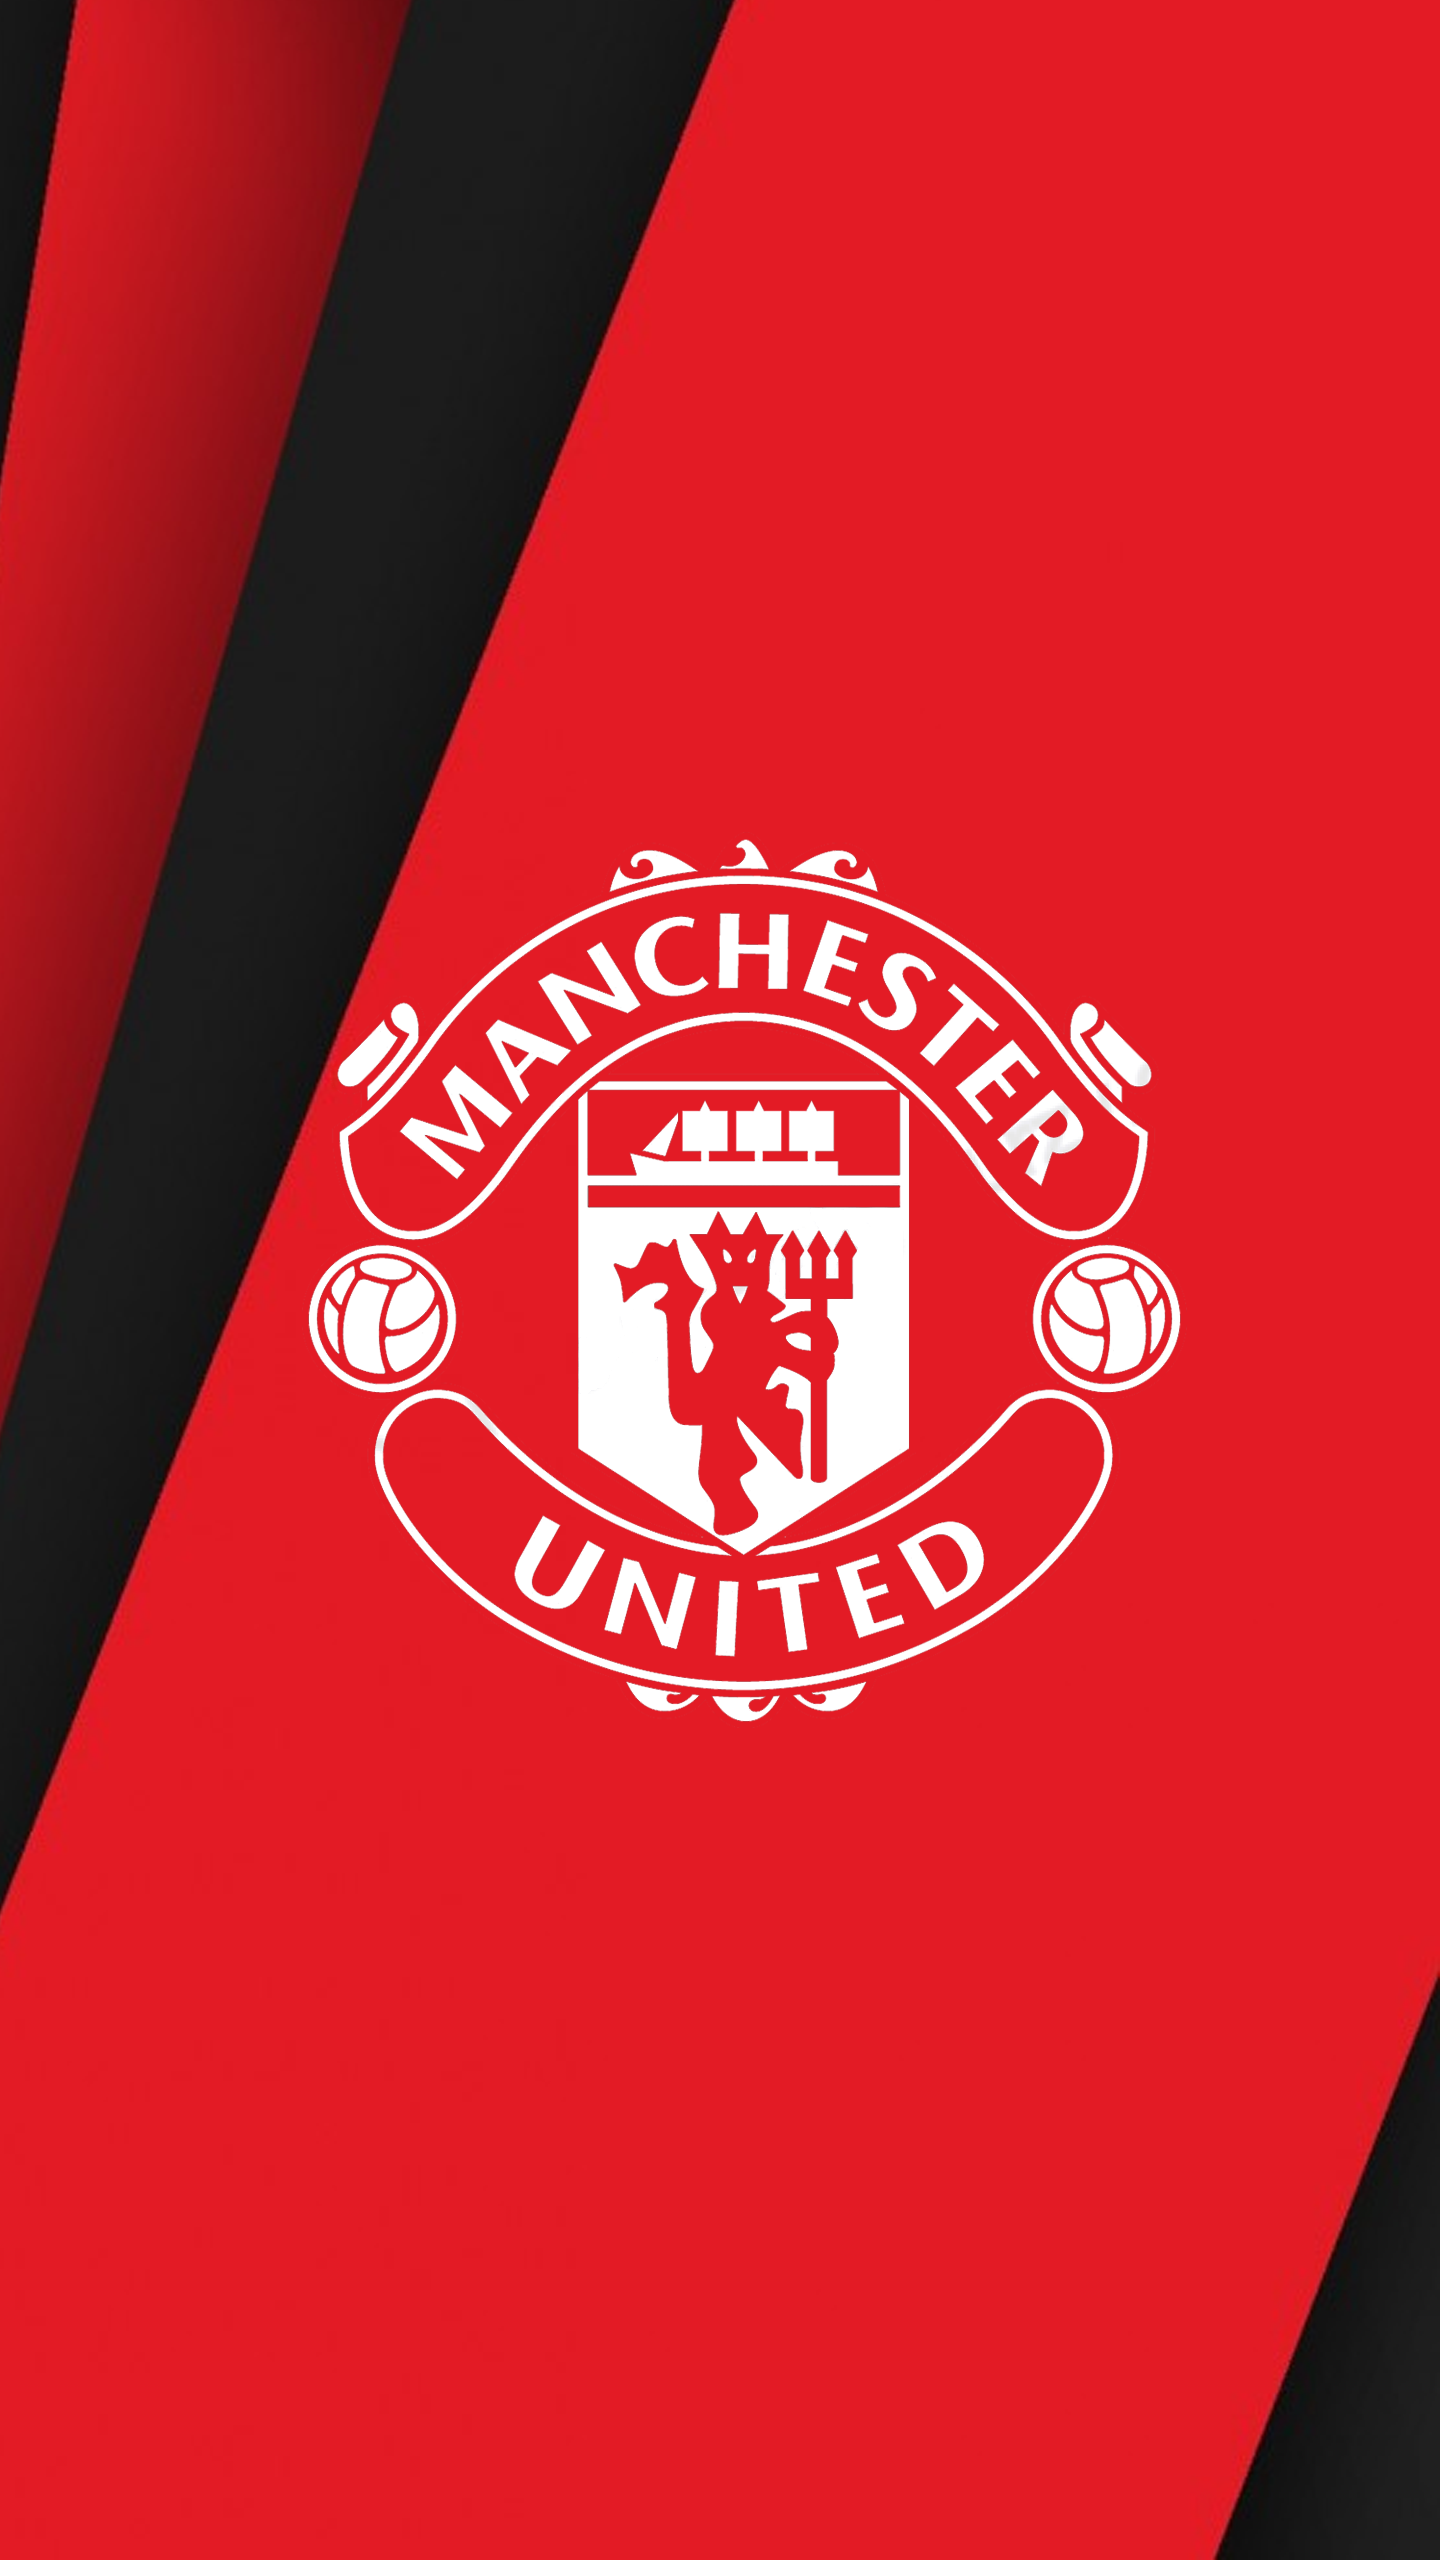 Manchester United Logo Wallpapers Hd Wallpaper Manchester Sepak Bola Wallpaper Ponsel Ponsel